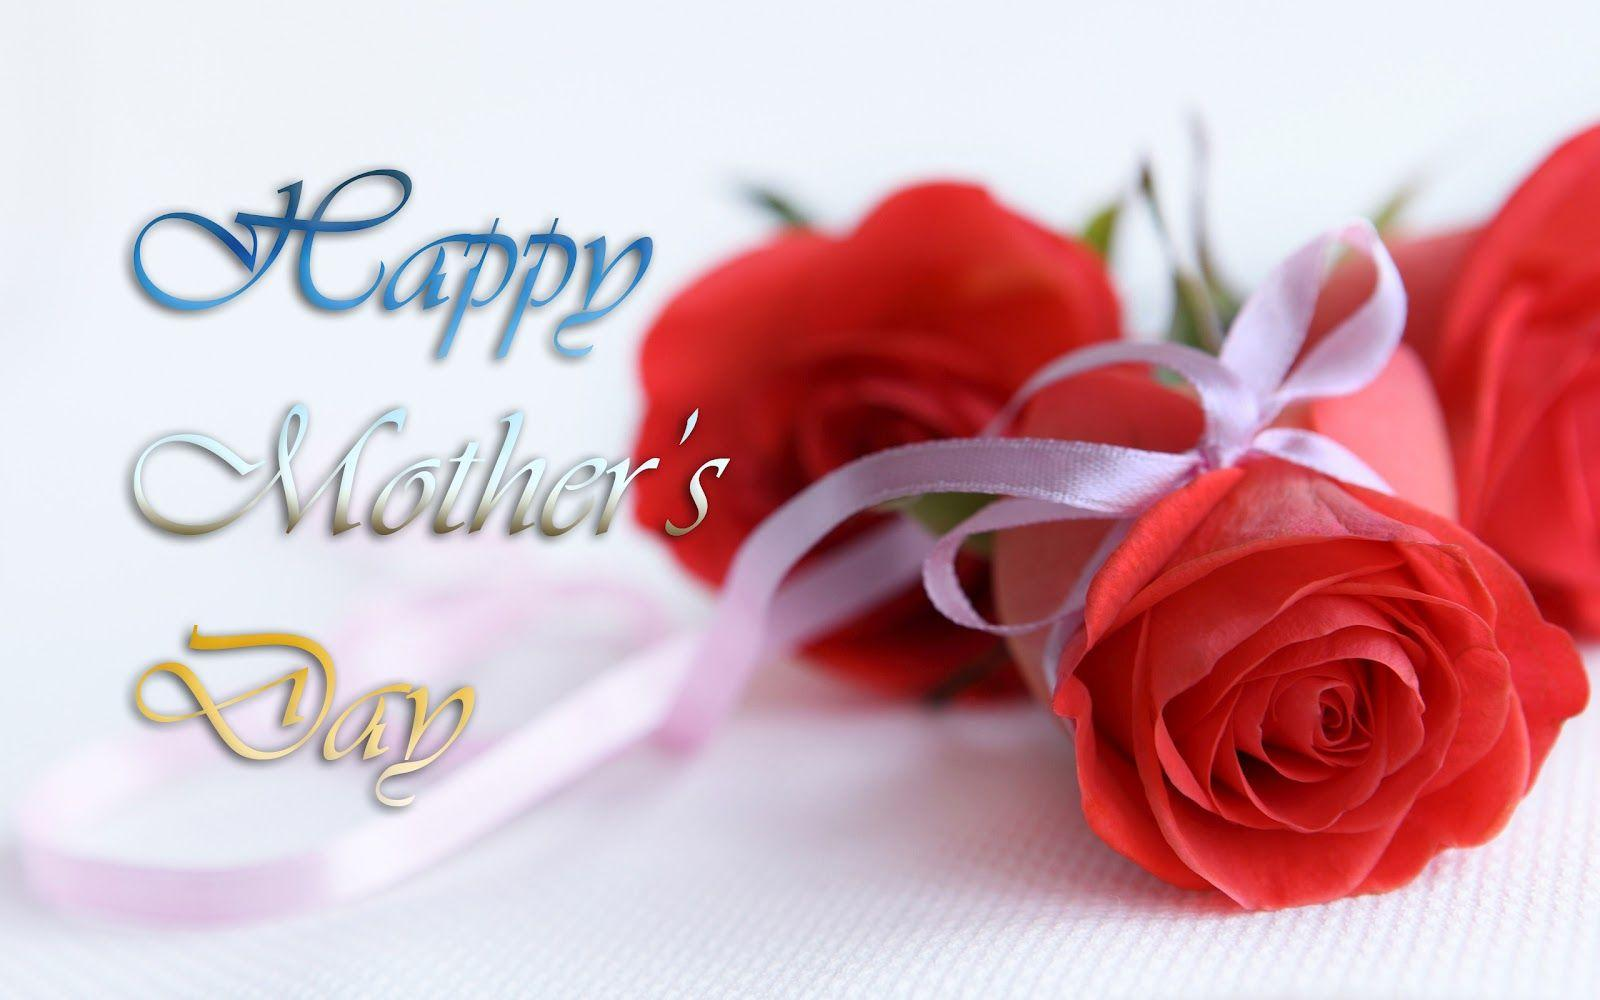 Happy Mother's Day Wallpapers | HD Wallpapers Pulse